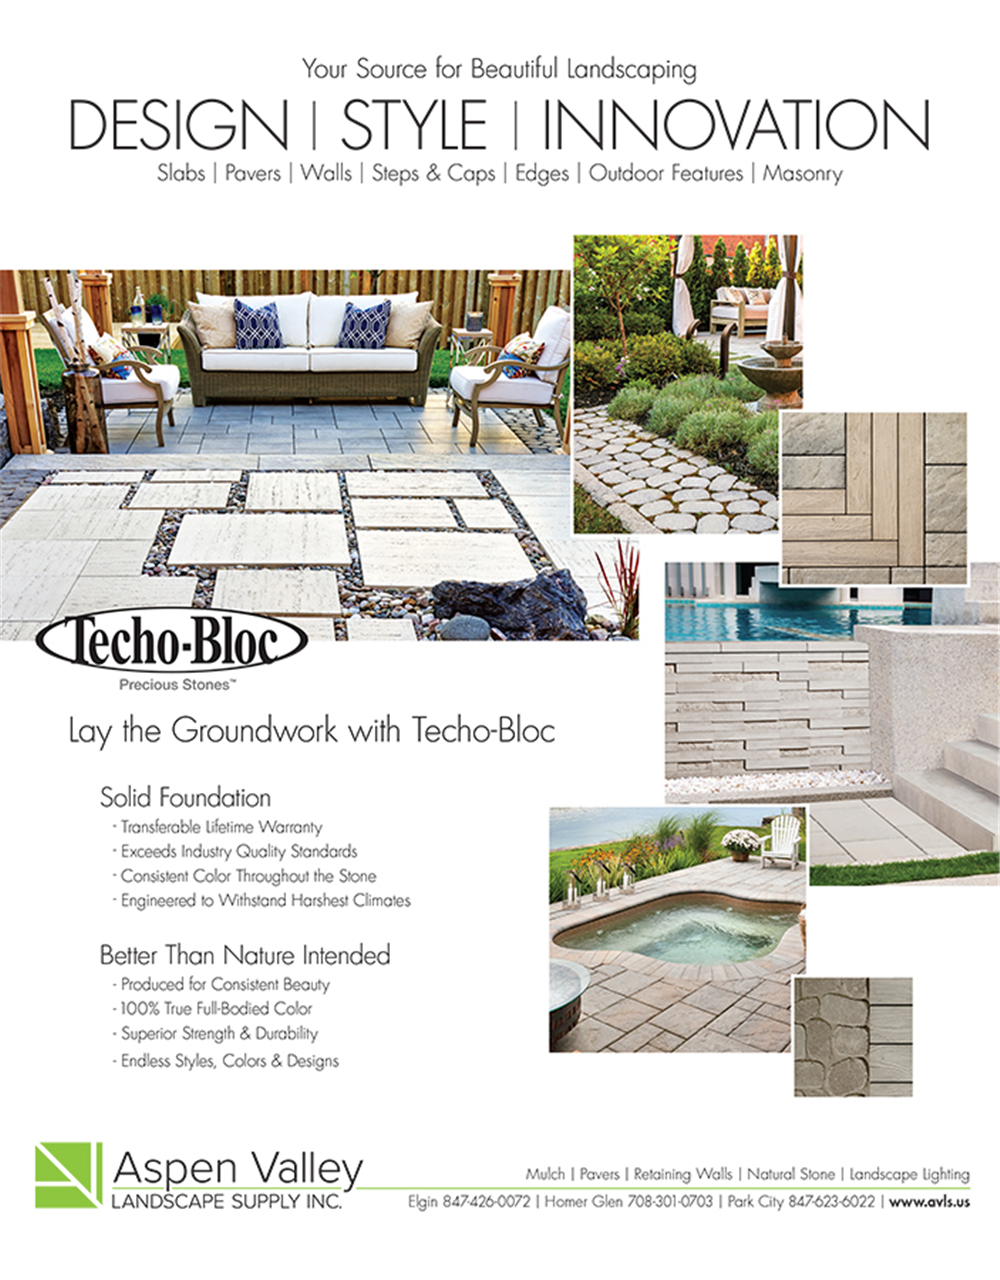 Precious stone pavers print ad - Our Portfolio - Aspen Valley Landscape Supply Inc. - Print Ad - JET